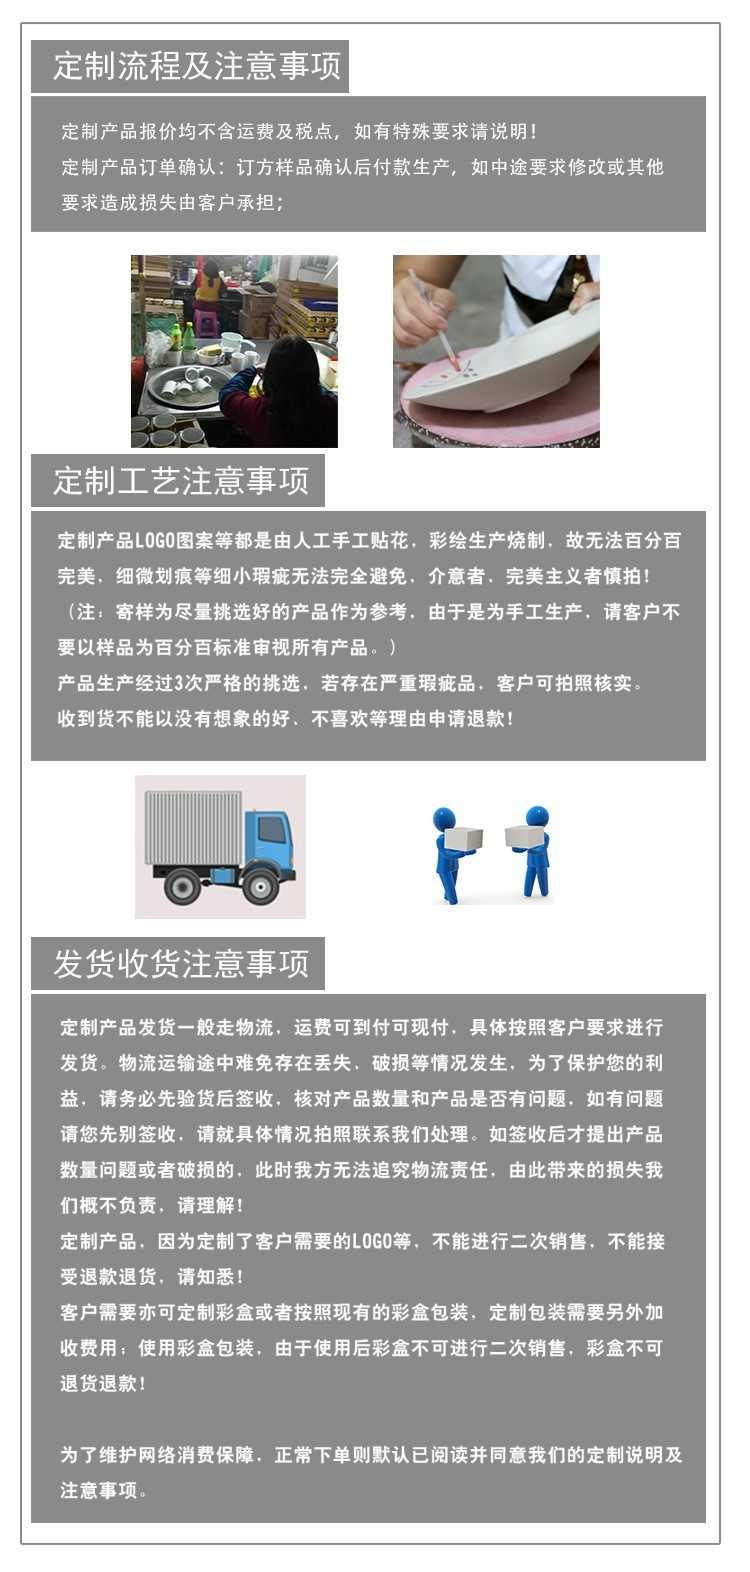 The kitchen creative household hotel wedding gifts ipads bowls plates 14 woolly ceramic tableware tableware suit custom